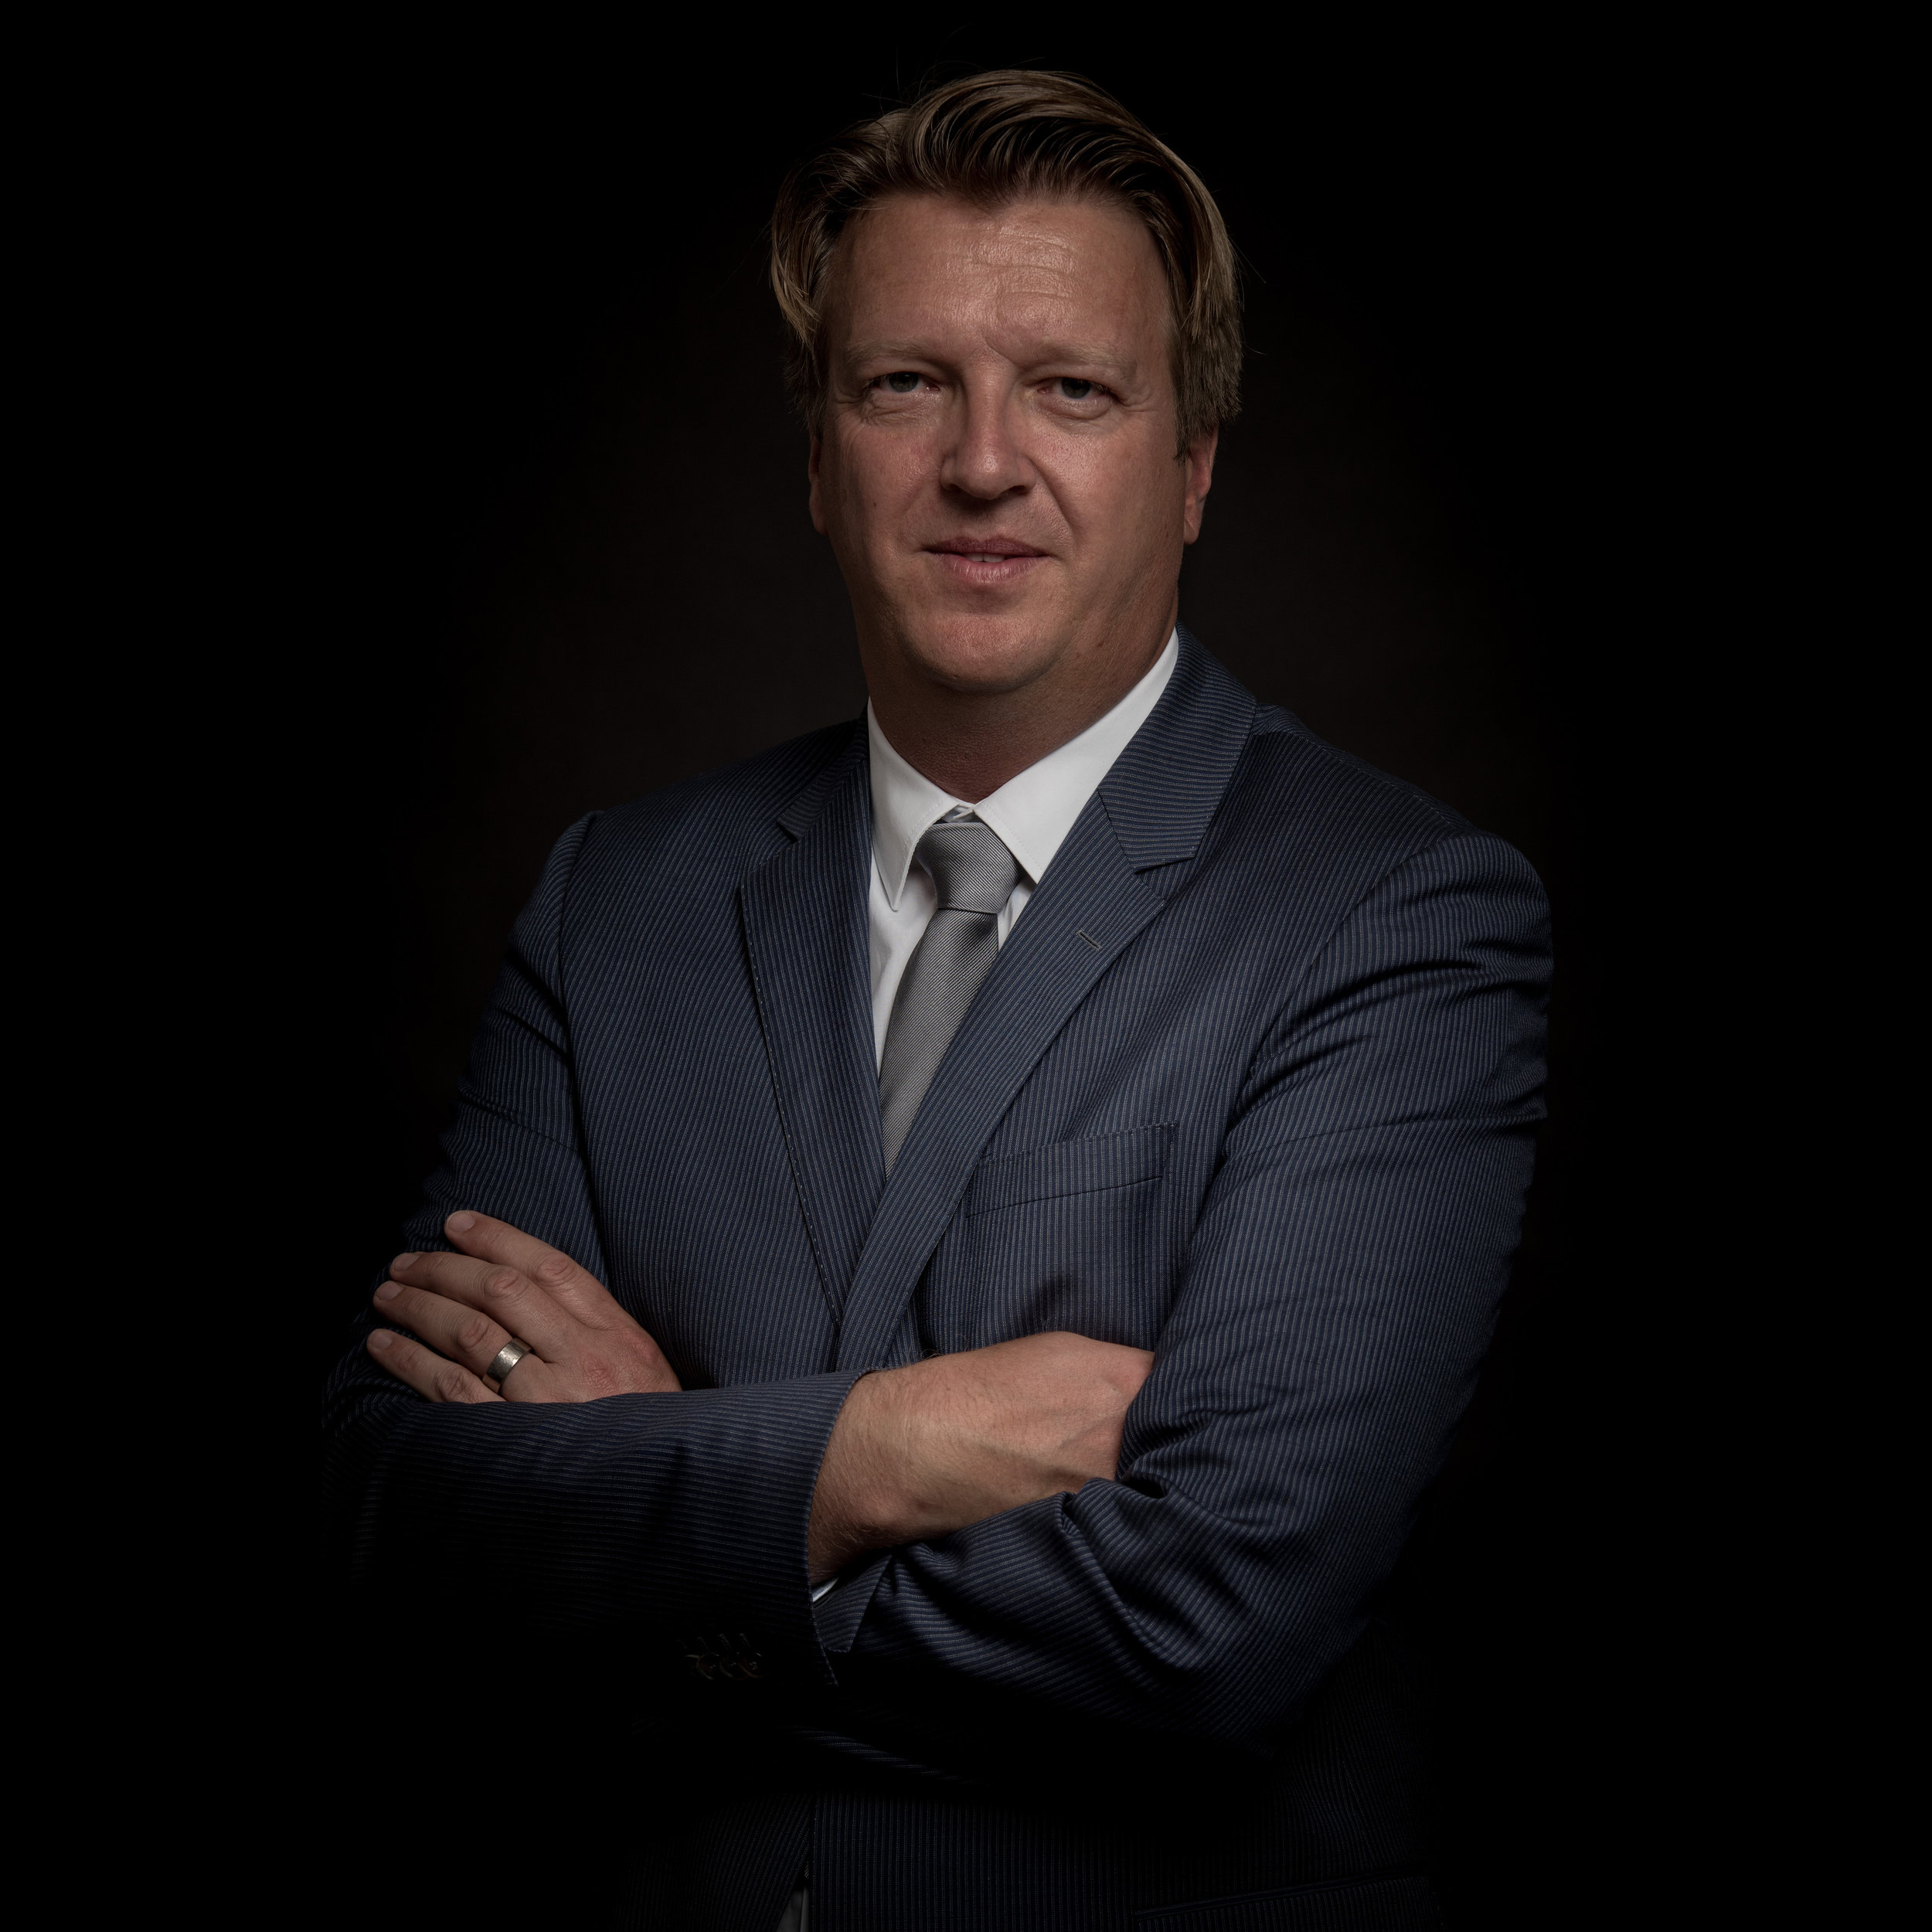 Niels Doerje - Chairman & Founding Partner